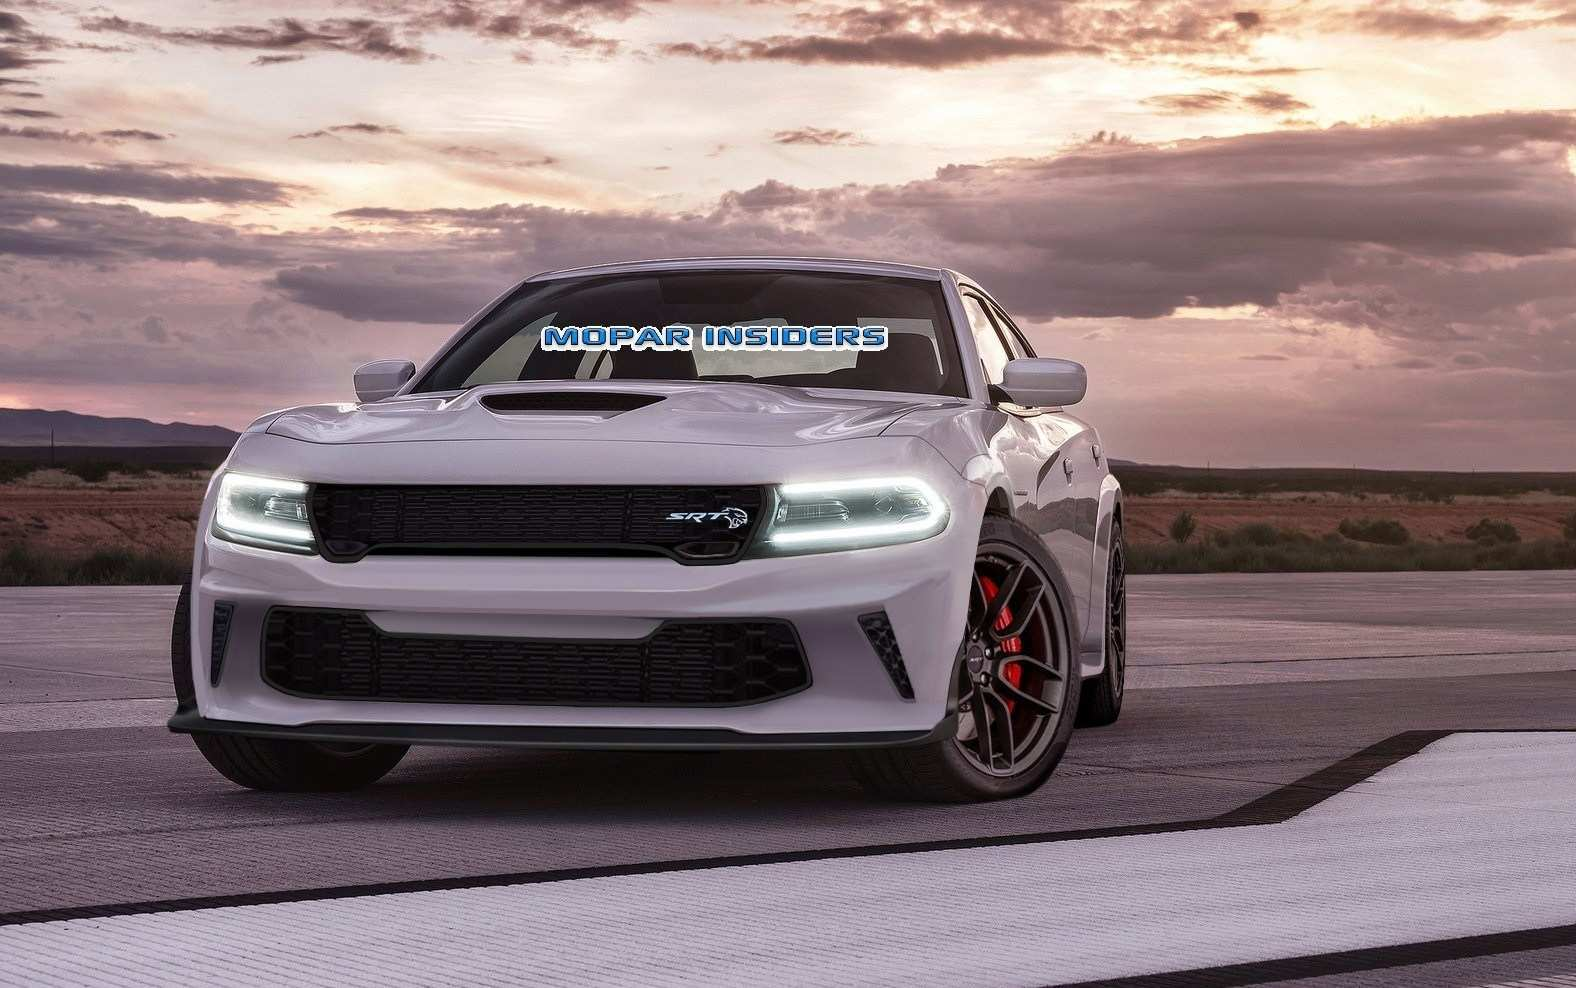 29 Concept of Dodge Super Bee 2020 Overview with Dodge Super Bee 2020